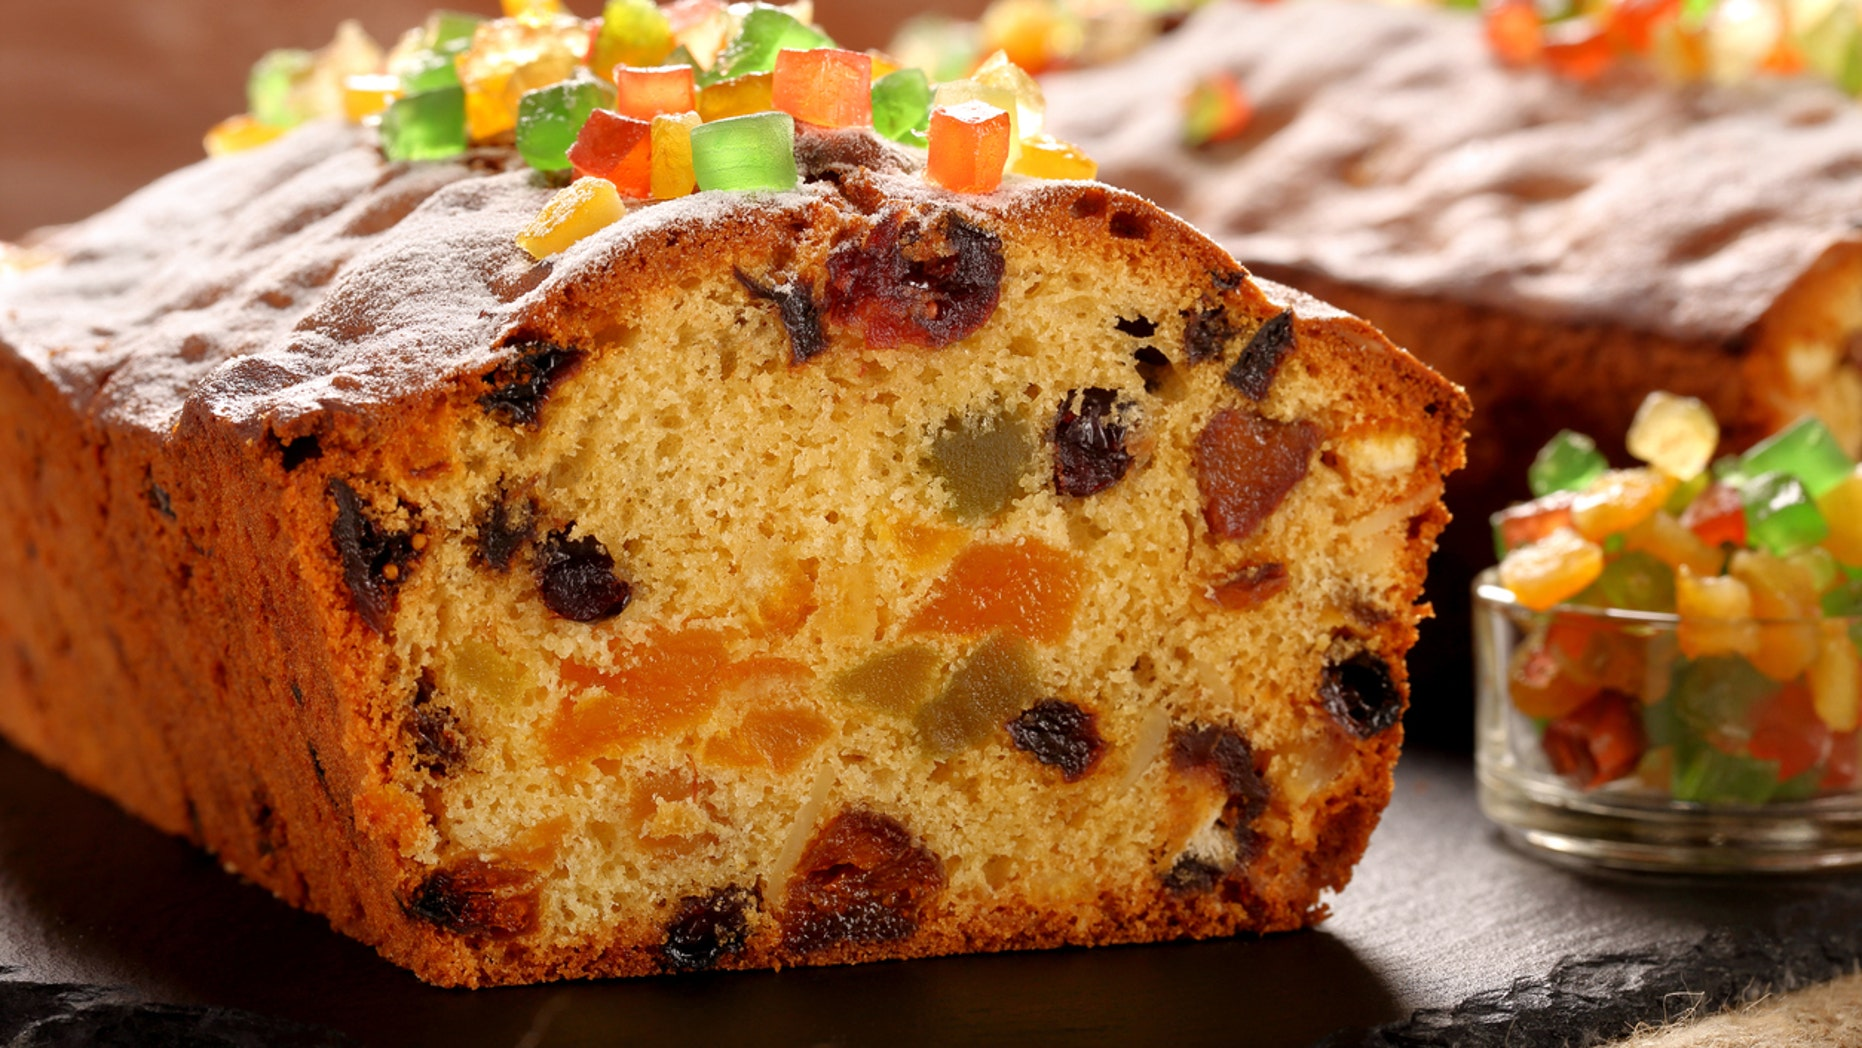 Century old fruitcake discovered, smells like 'rancid butter.'